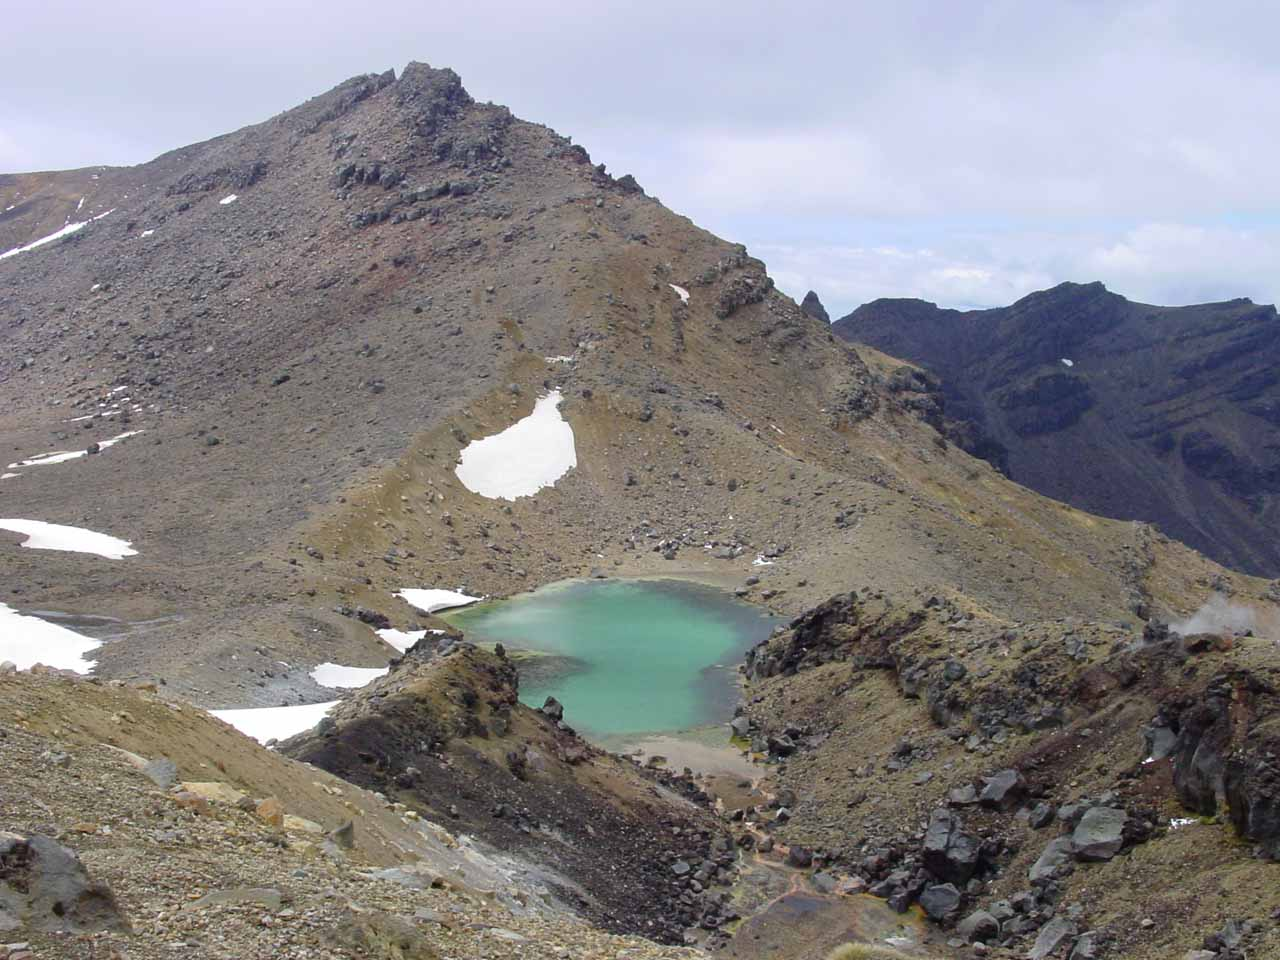 Looking towards more of the Emerald Lakes